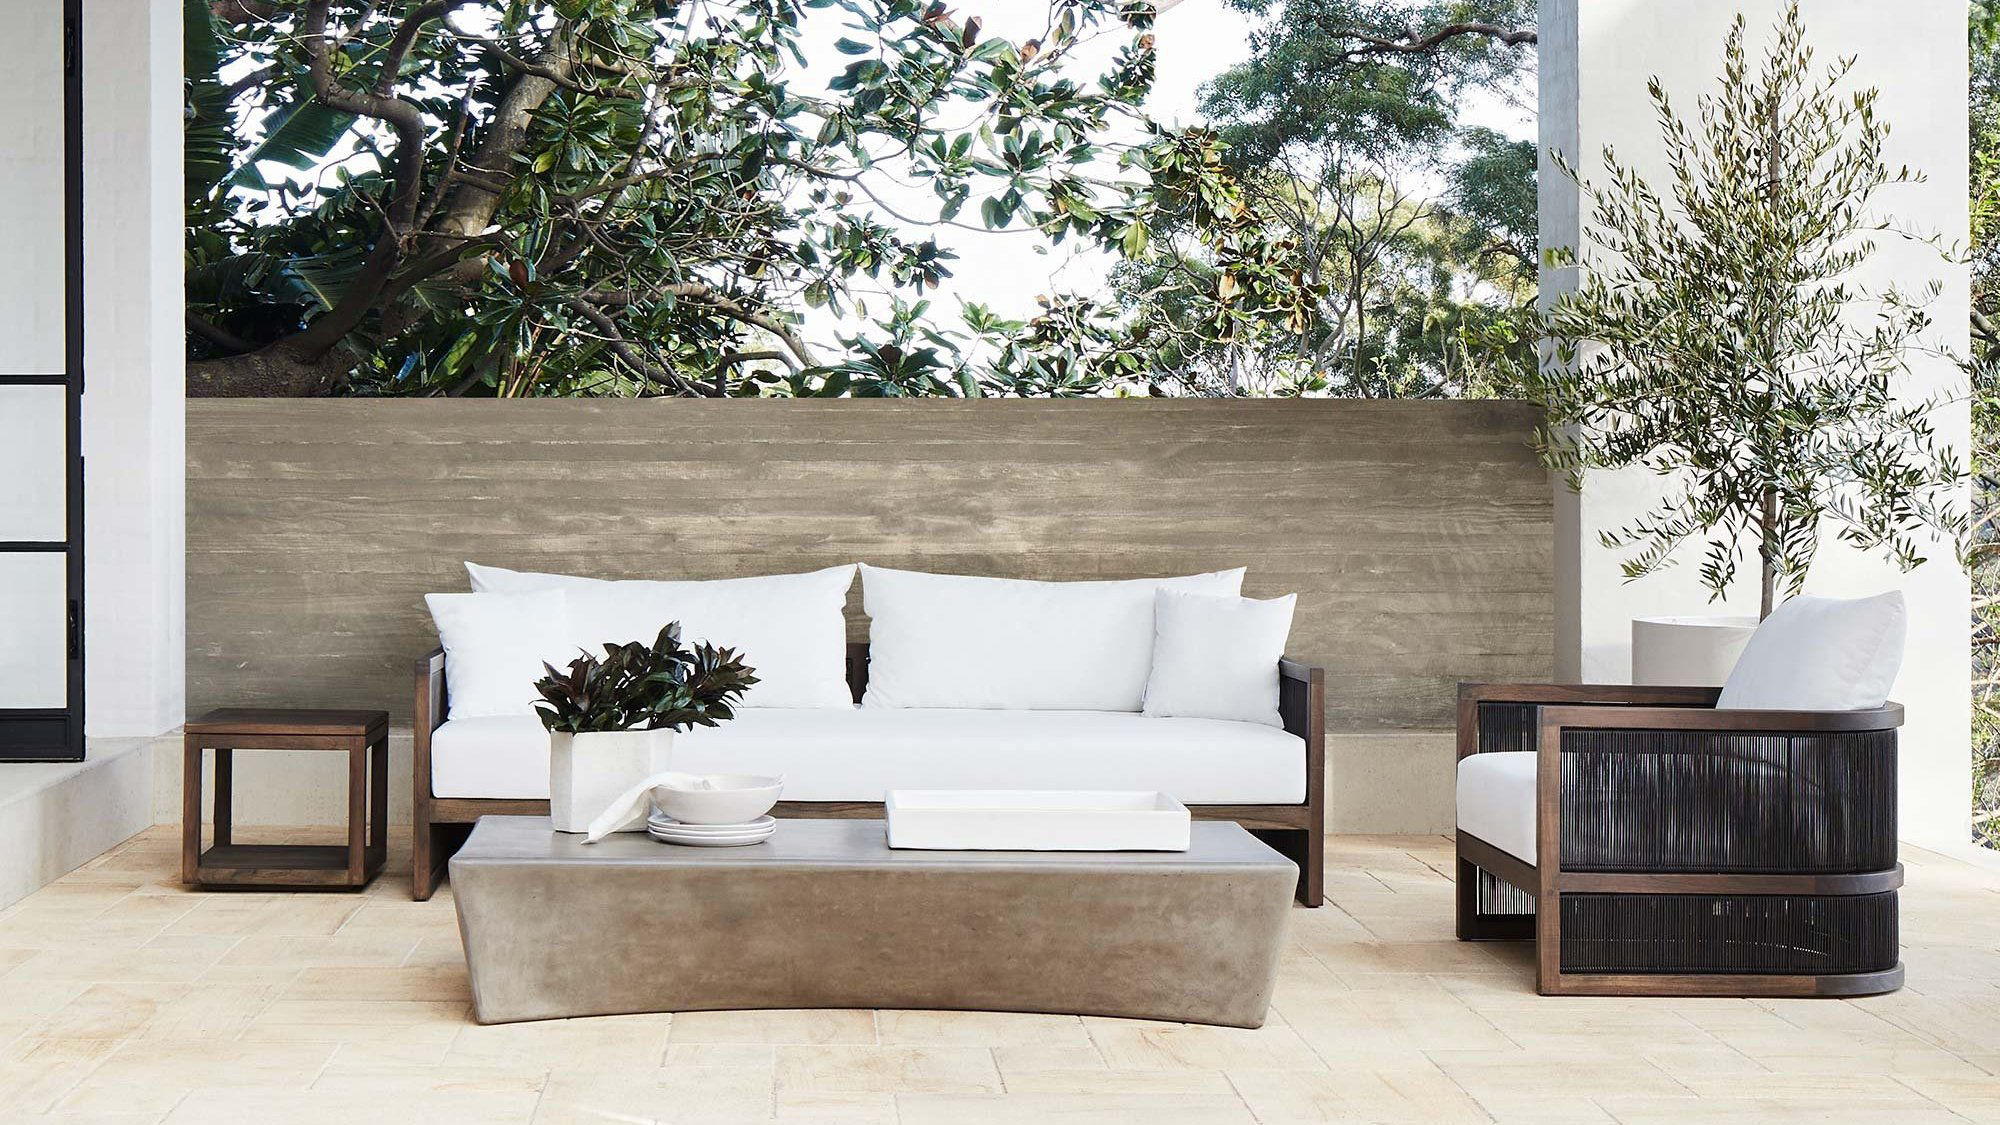 Simple life with modern furniture